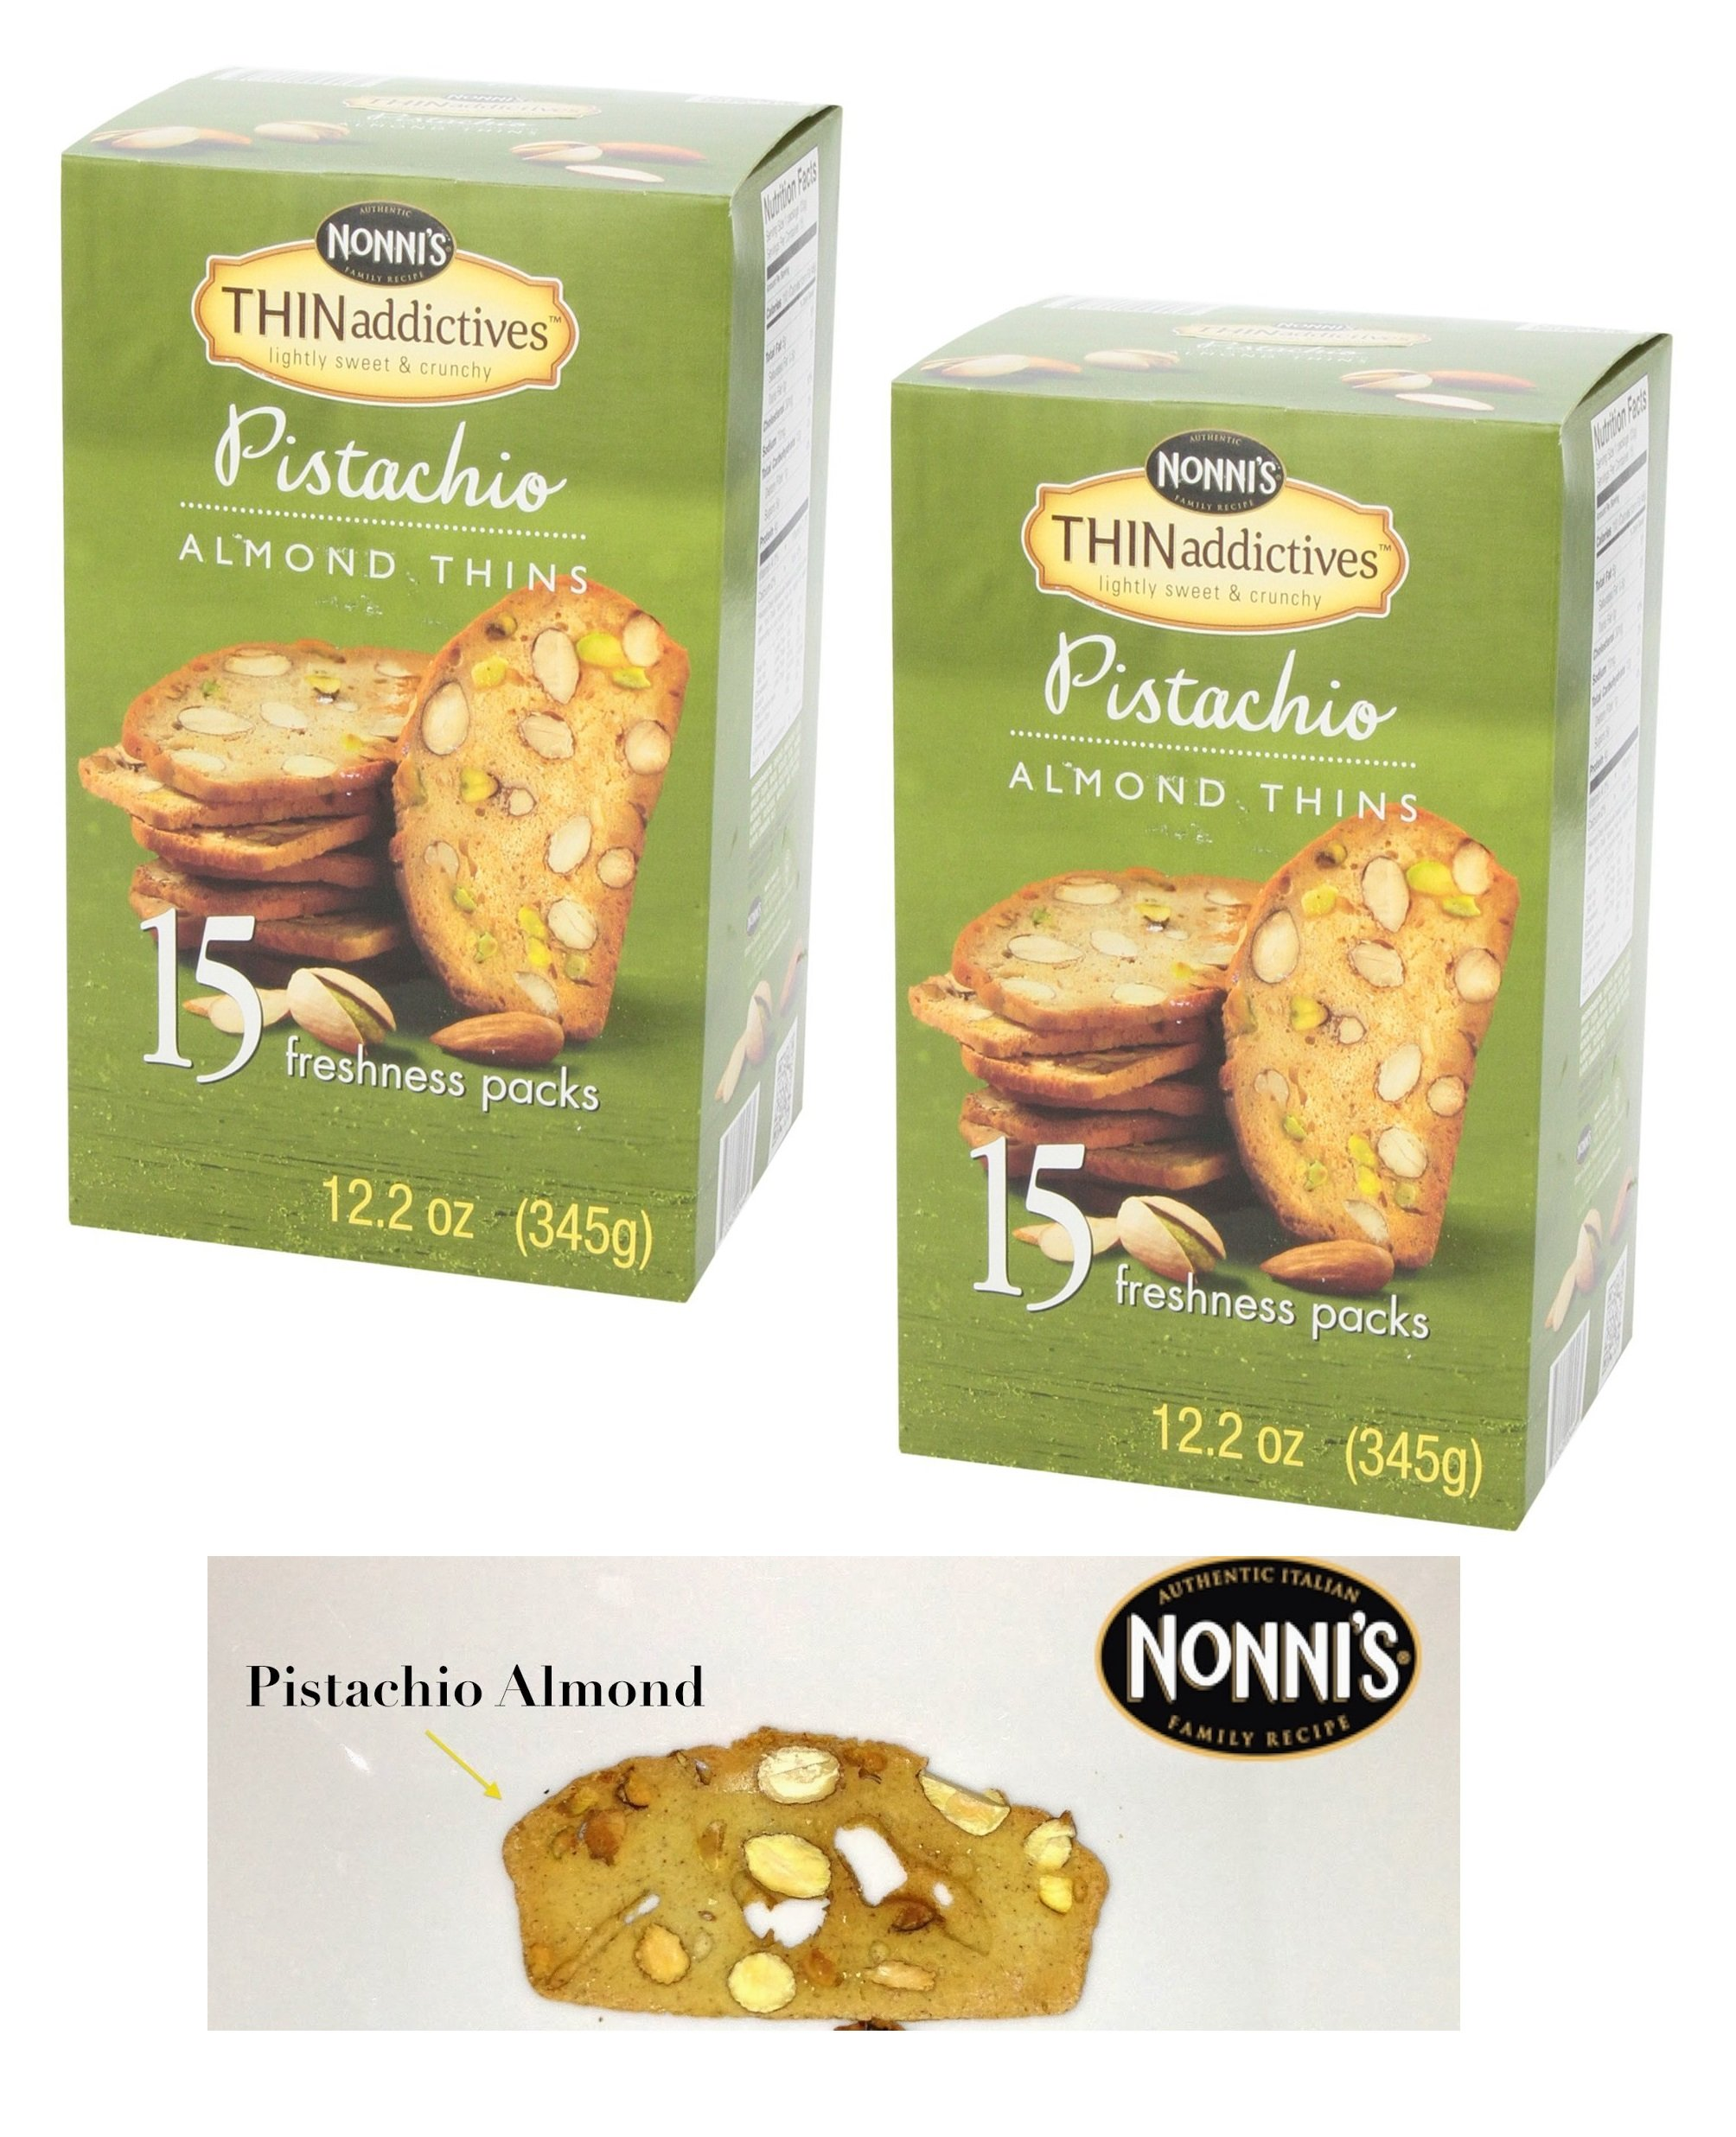 Thin Addictives, Thinaddictives Lightly Sweet & Crunchy Pistachio Almond Thins of 12.2 Oz Box- 2 Pack of 15 Freshness Packs ( 30 Packs Total )